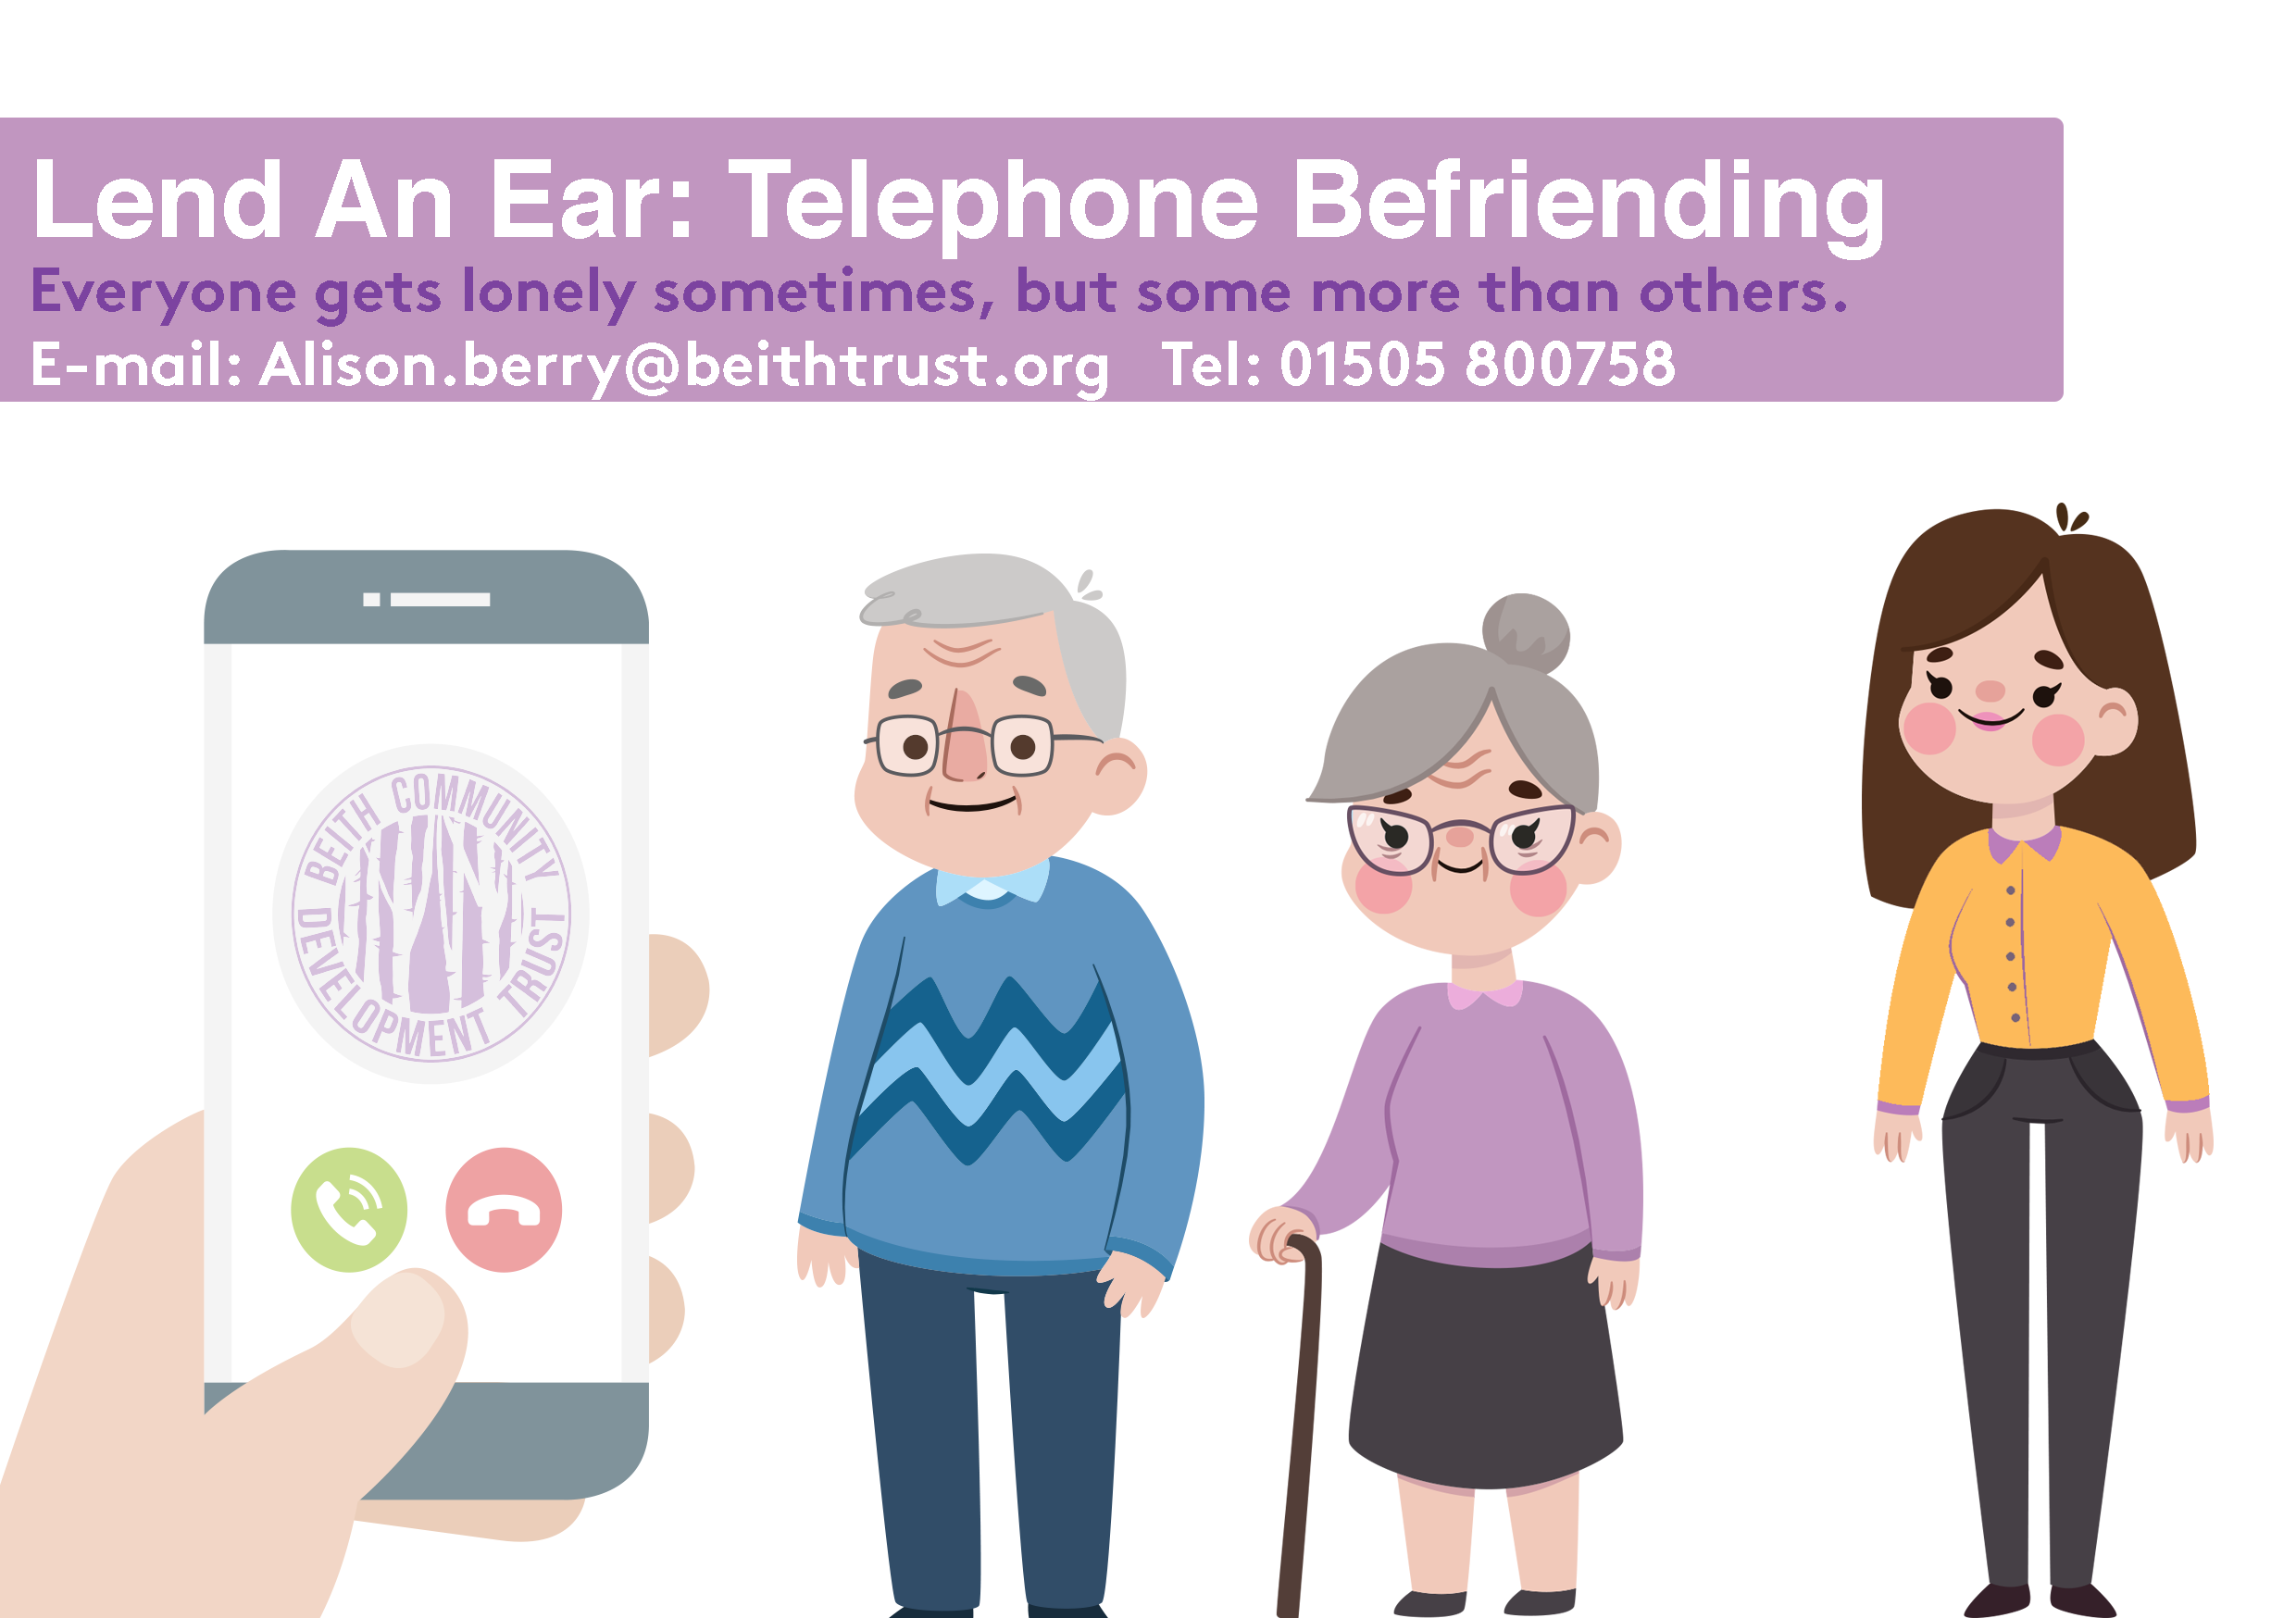 Lend An Ear: Telephone Befriending Launch